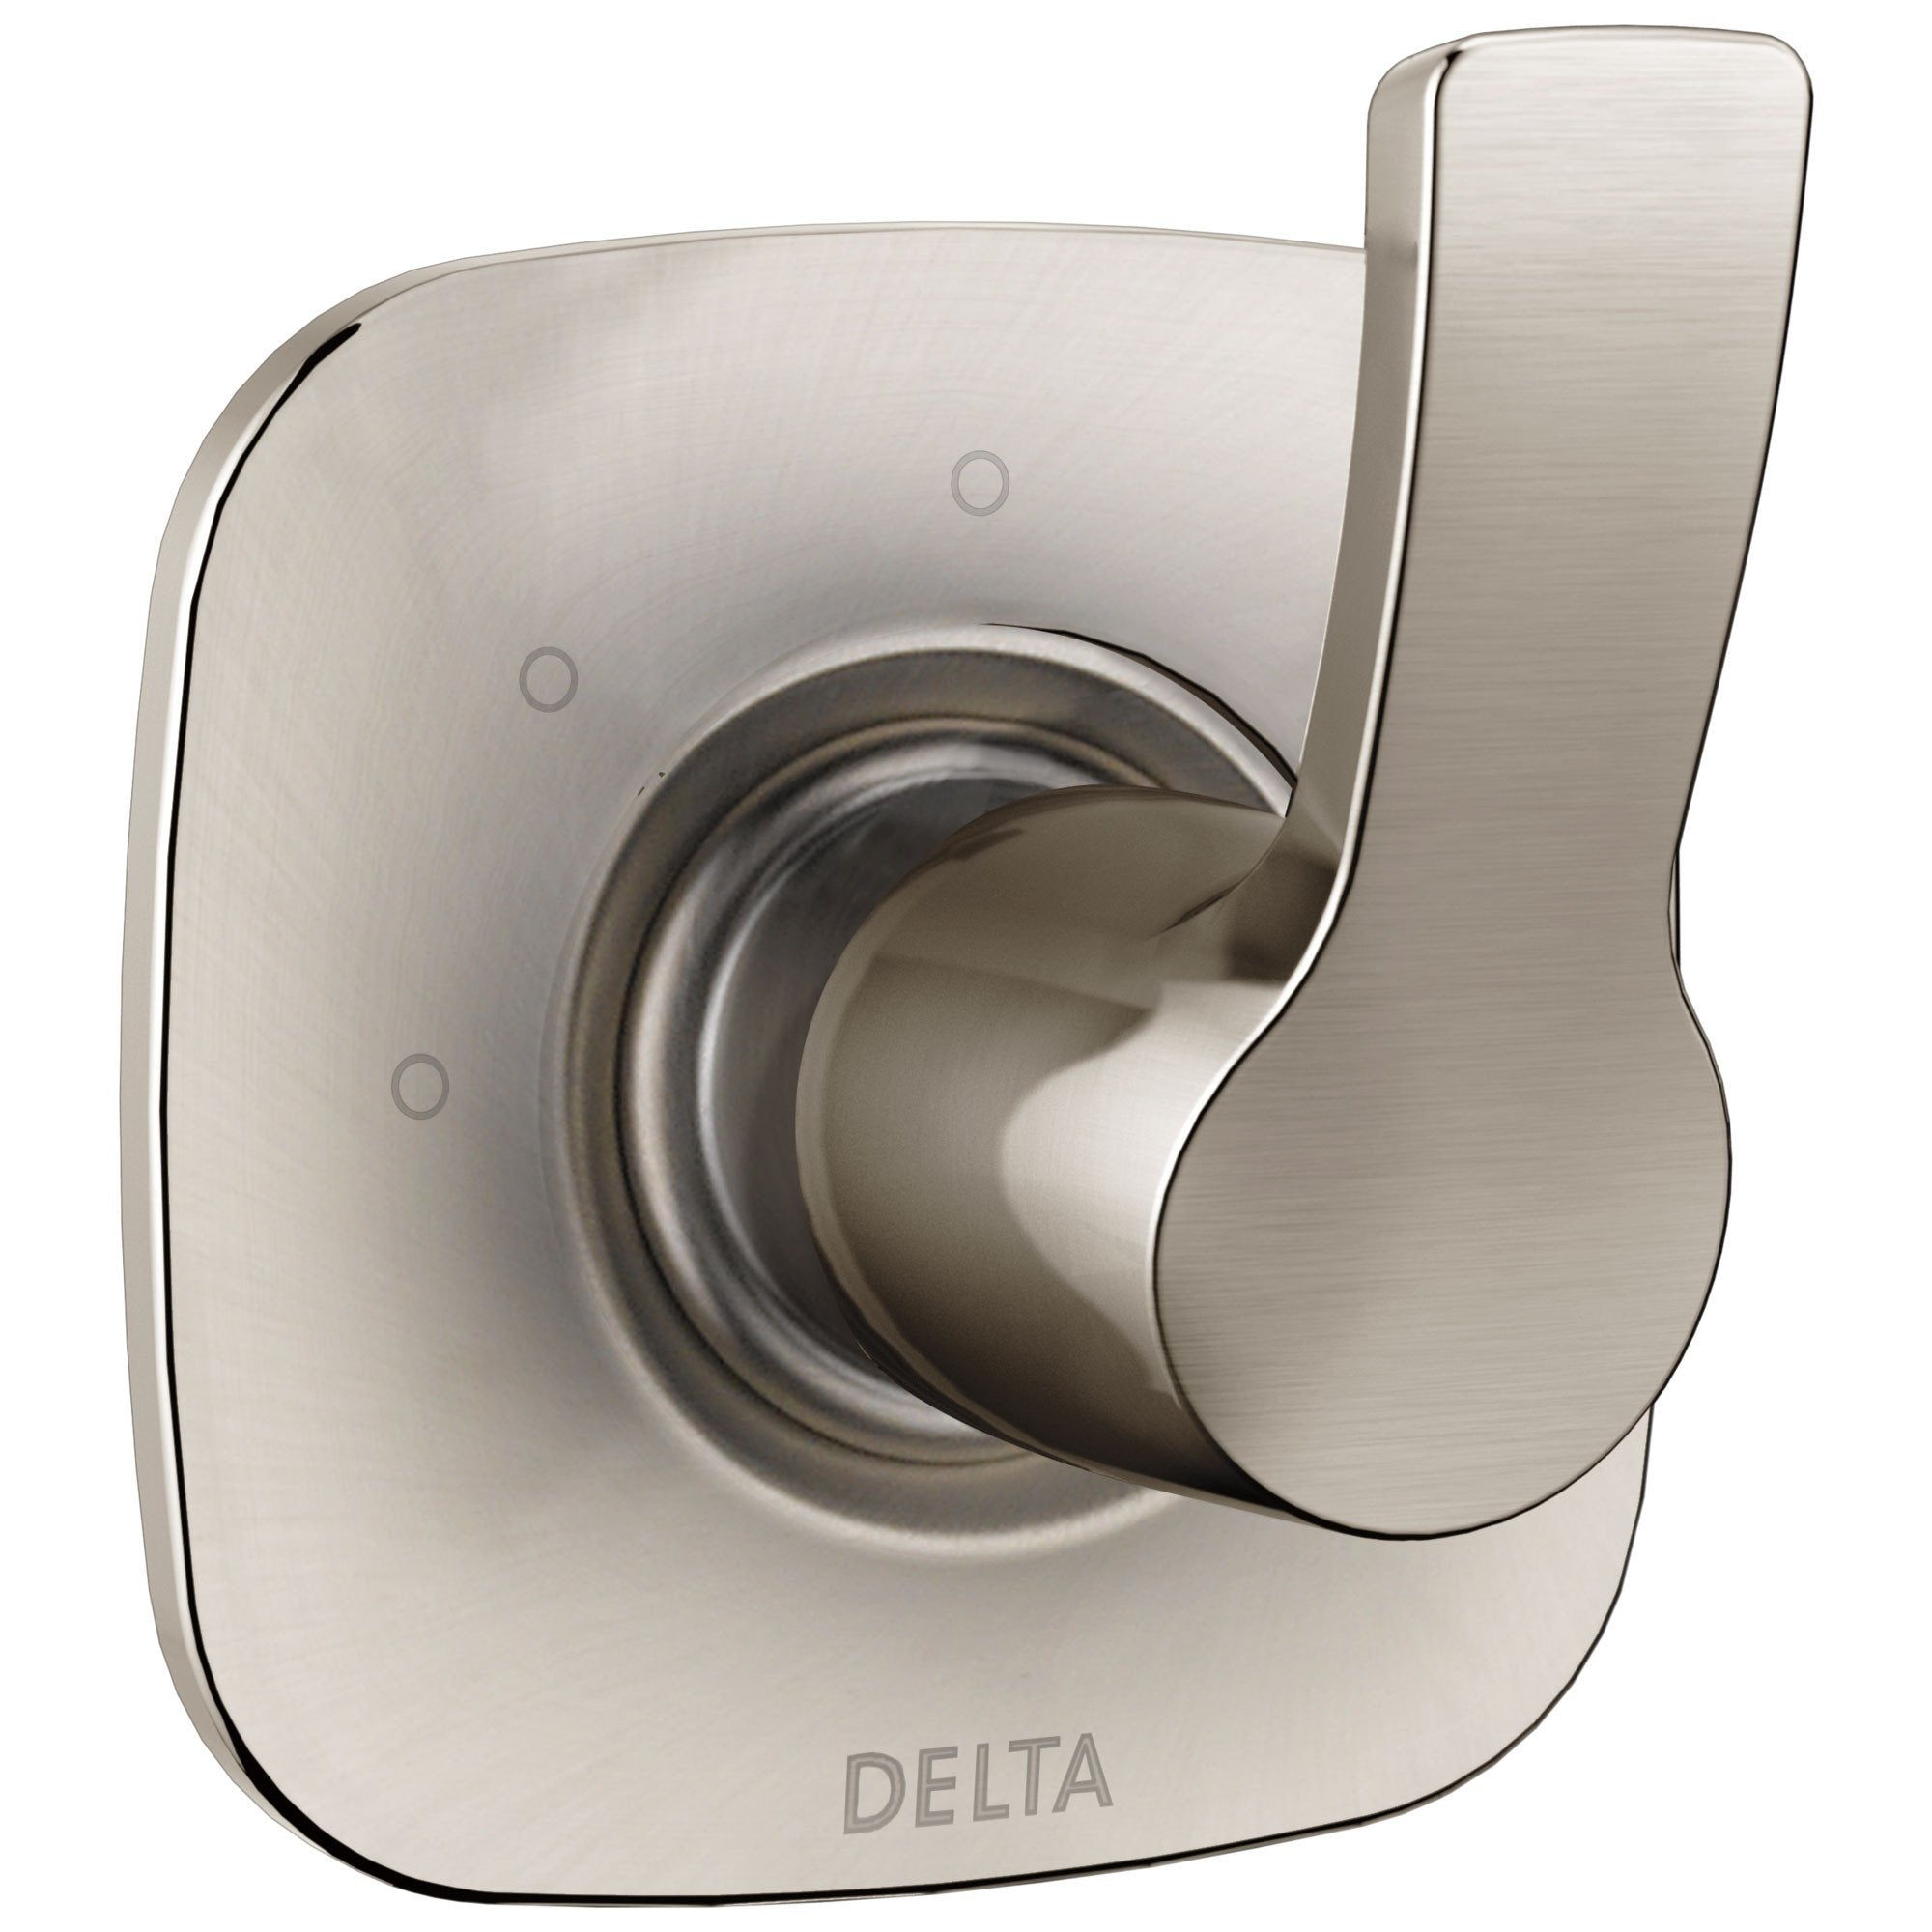 Delta Tesla Collection Stainless Steel Finish Modern 3-Setting 2-Port Single Handle Shower Diverter Trim Kit (Valve Sold Separately) 732795